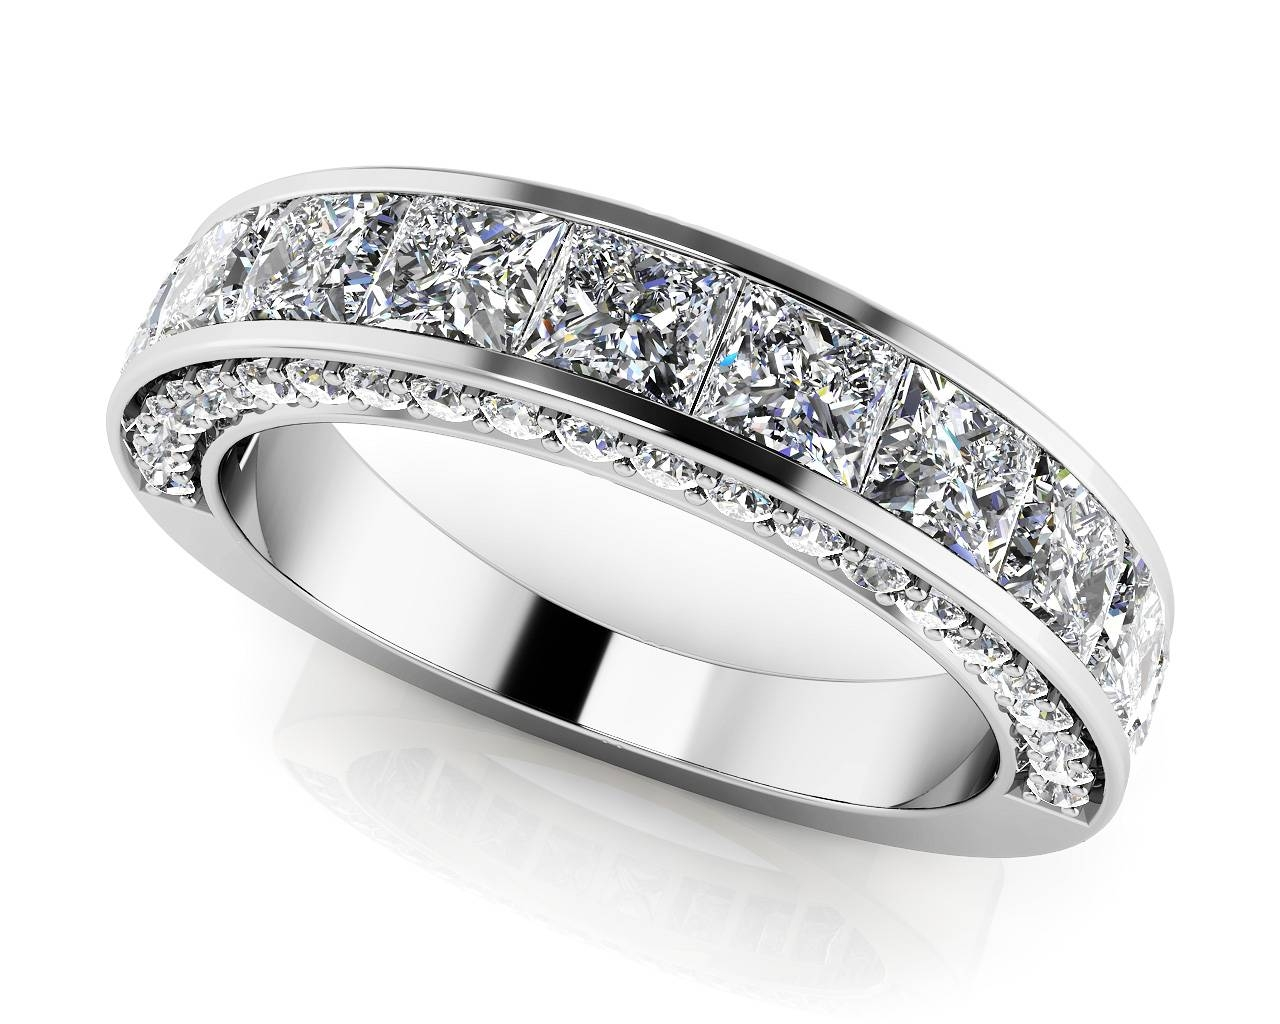 Design Your Own Diamond Anniversary Ring & Eternity Ring In Most Popular 25th Anniversary Rings For Her (View 18 of 25)